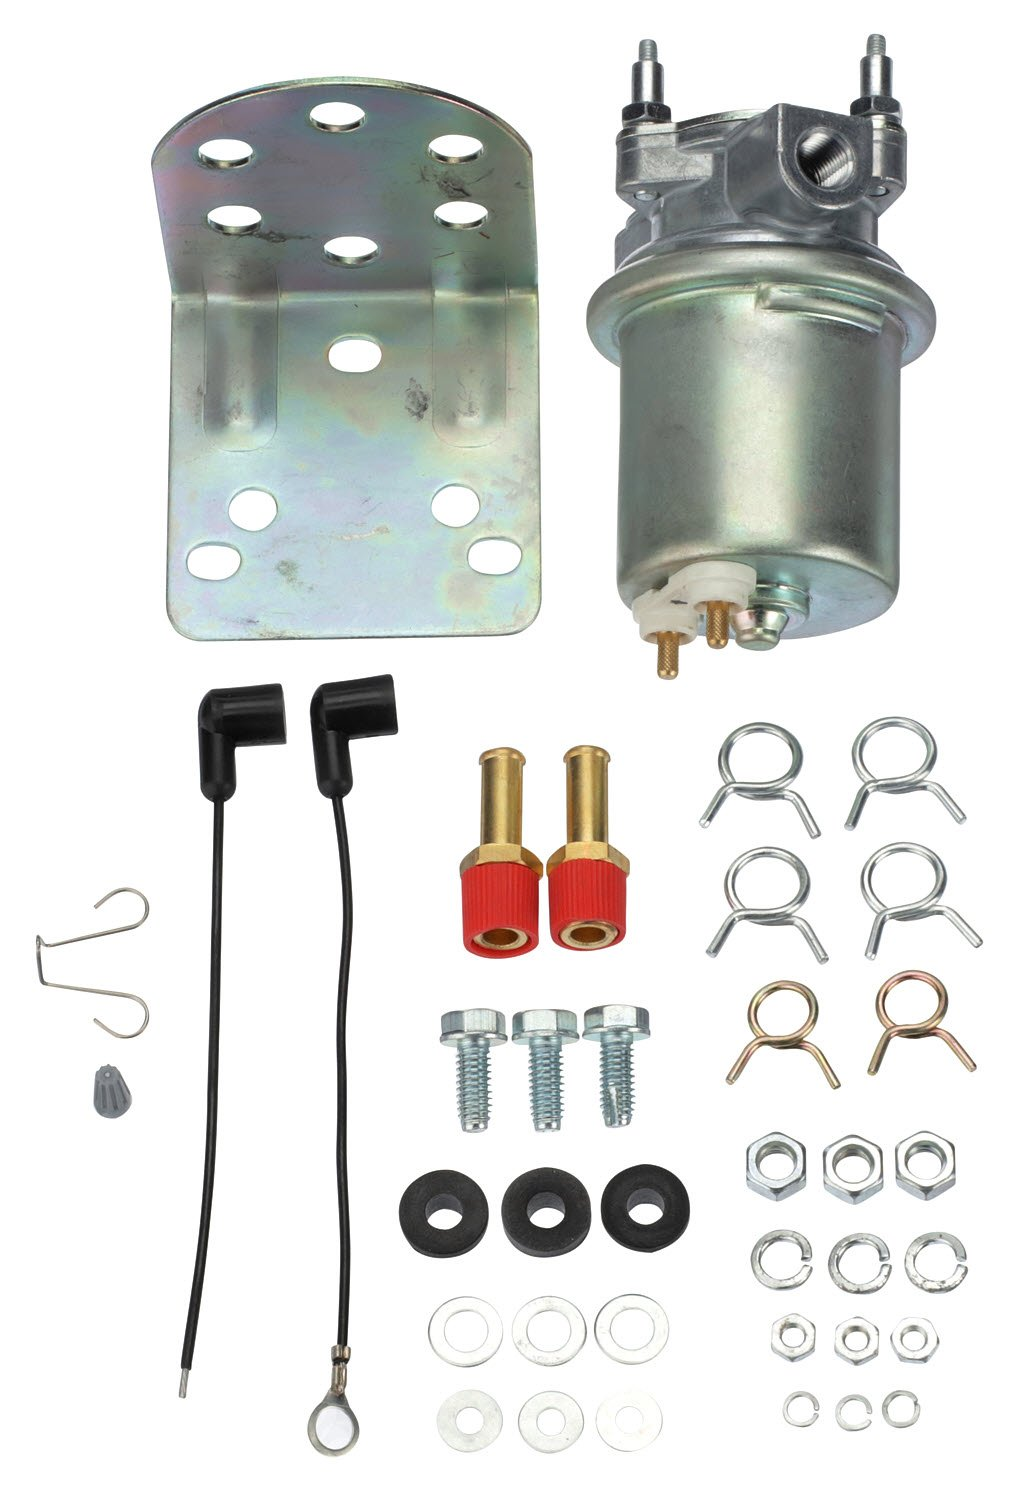 Carter P4070 In-Line Electric Fuel Pump